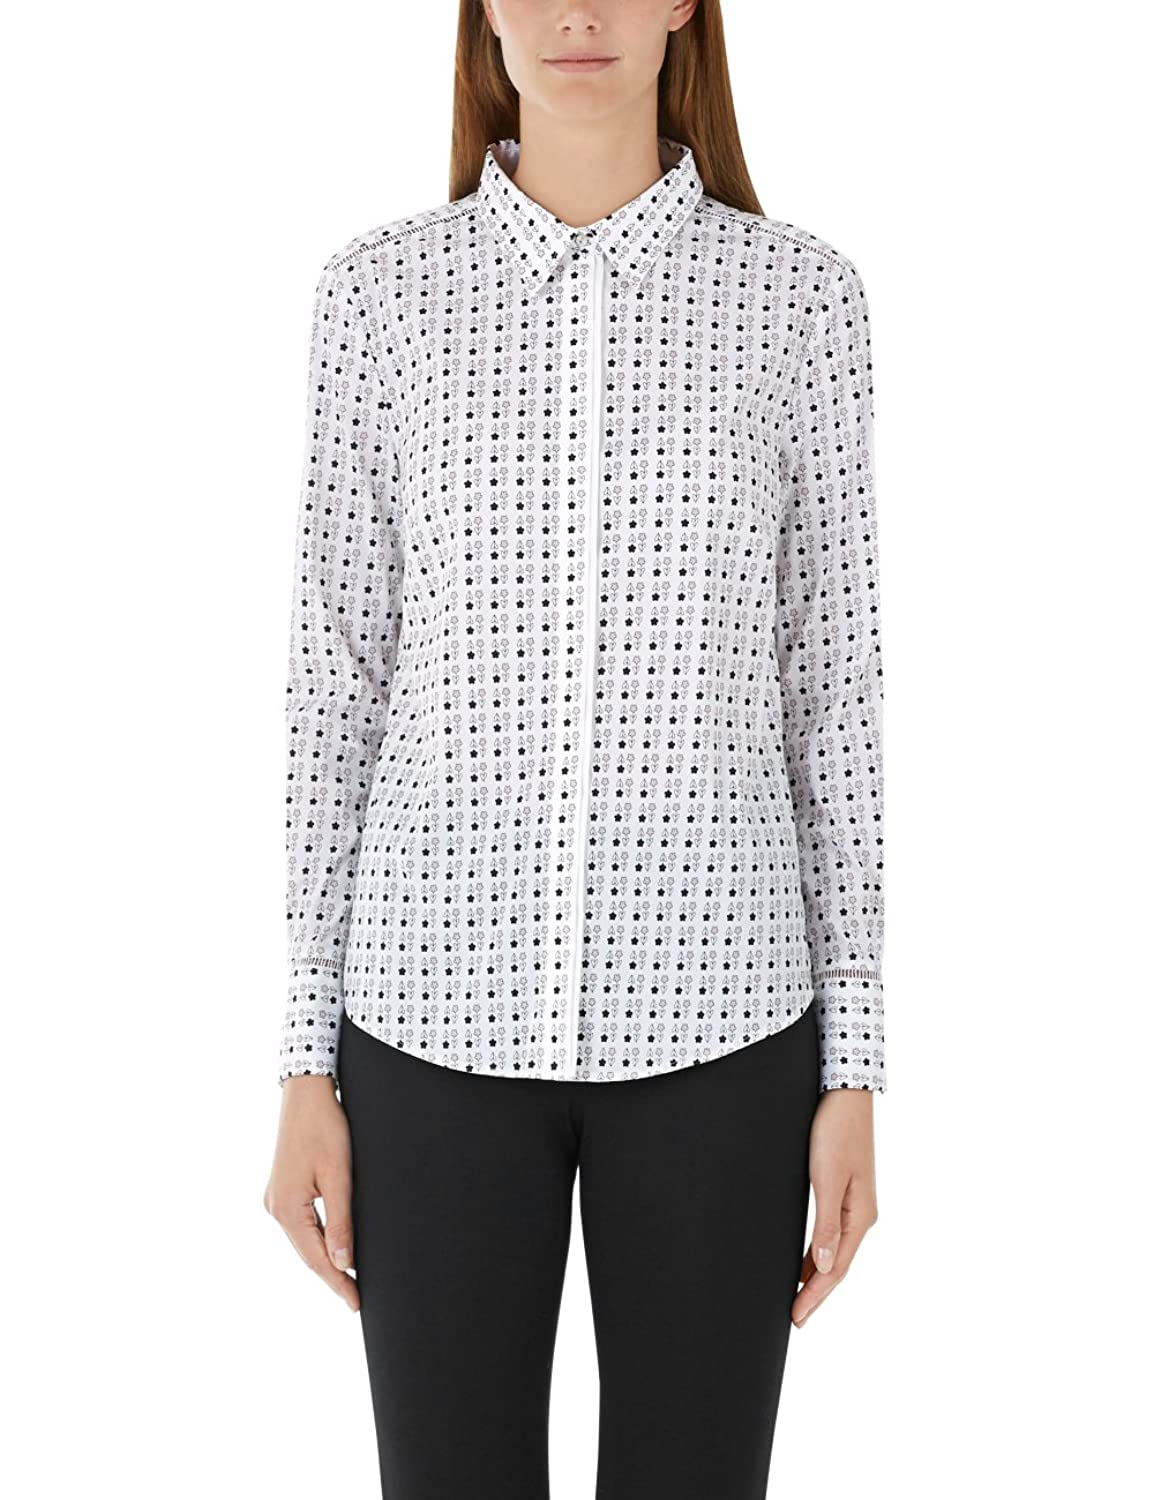 Marc Cain Additions Women's Ga 51.02 W38 Blouse